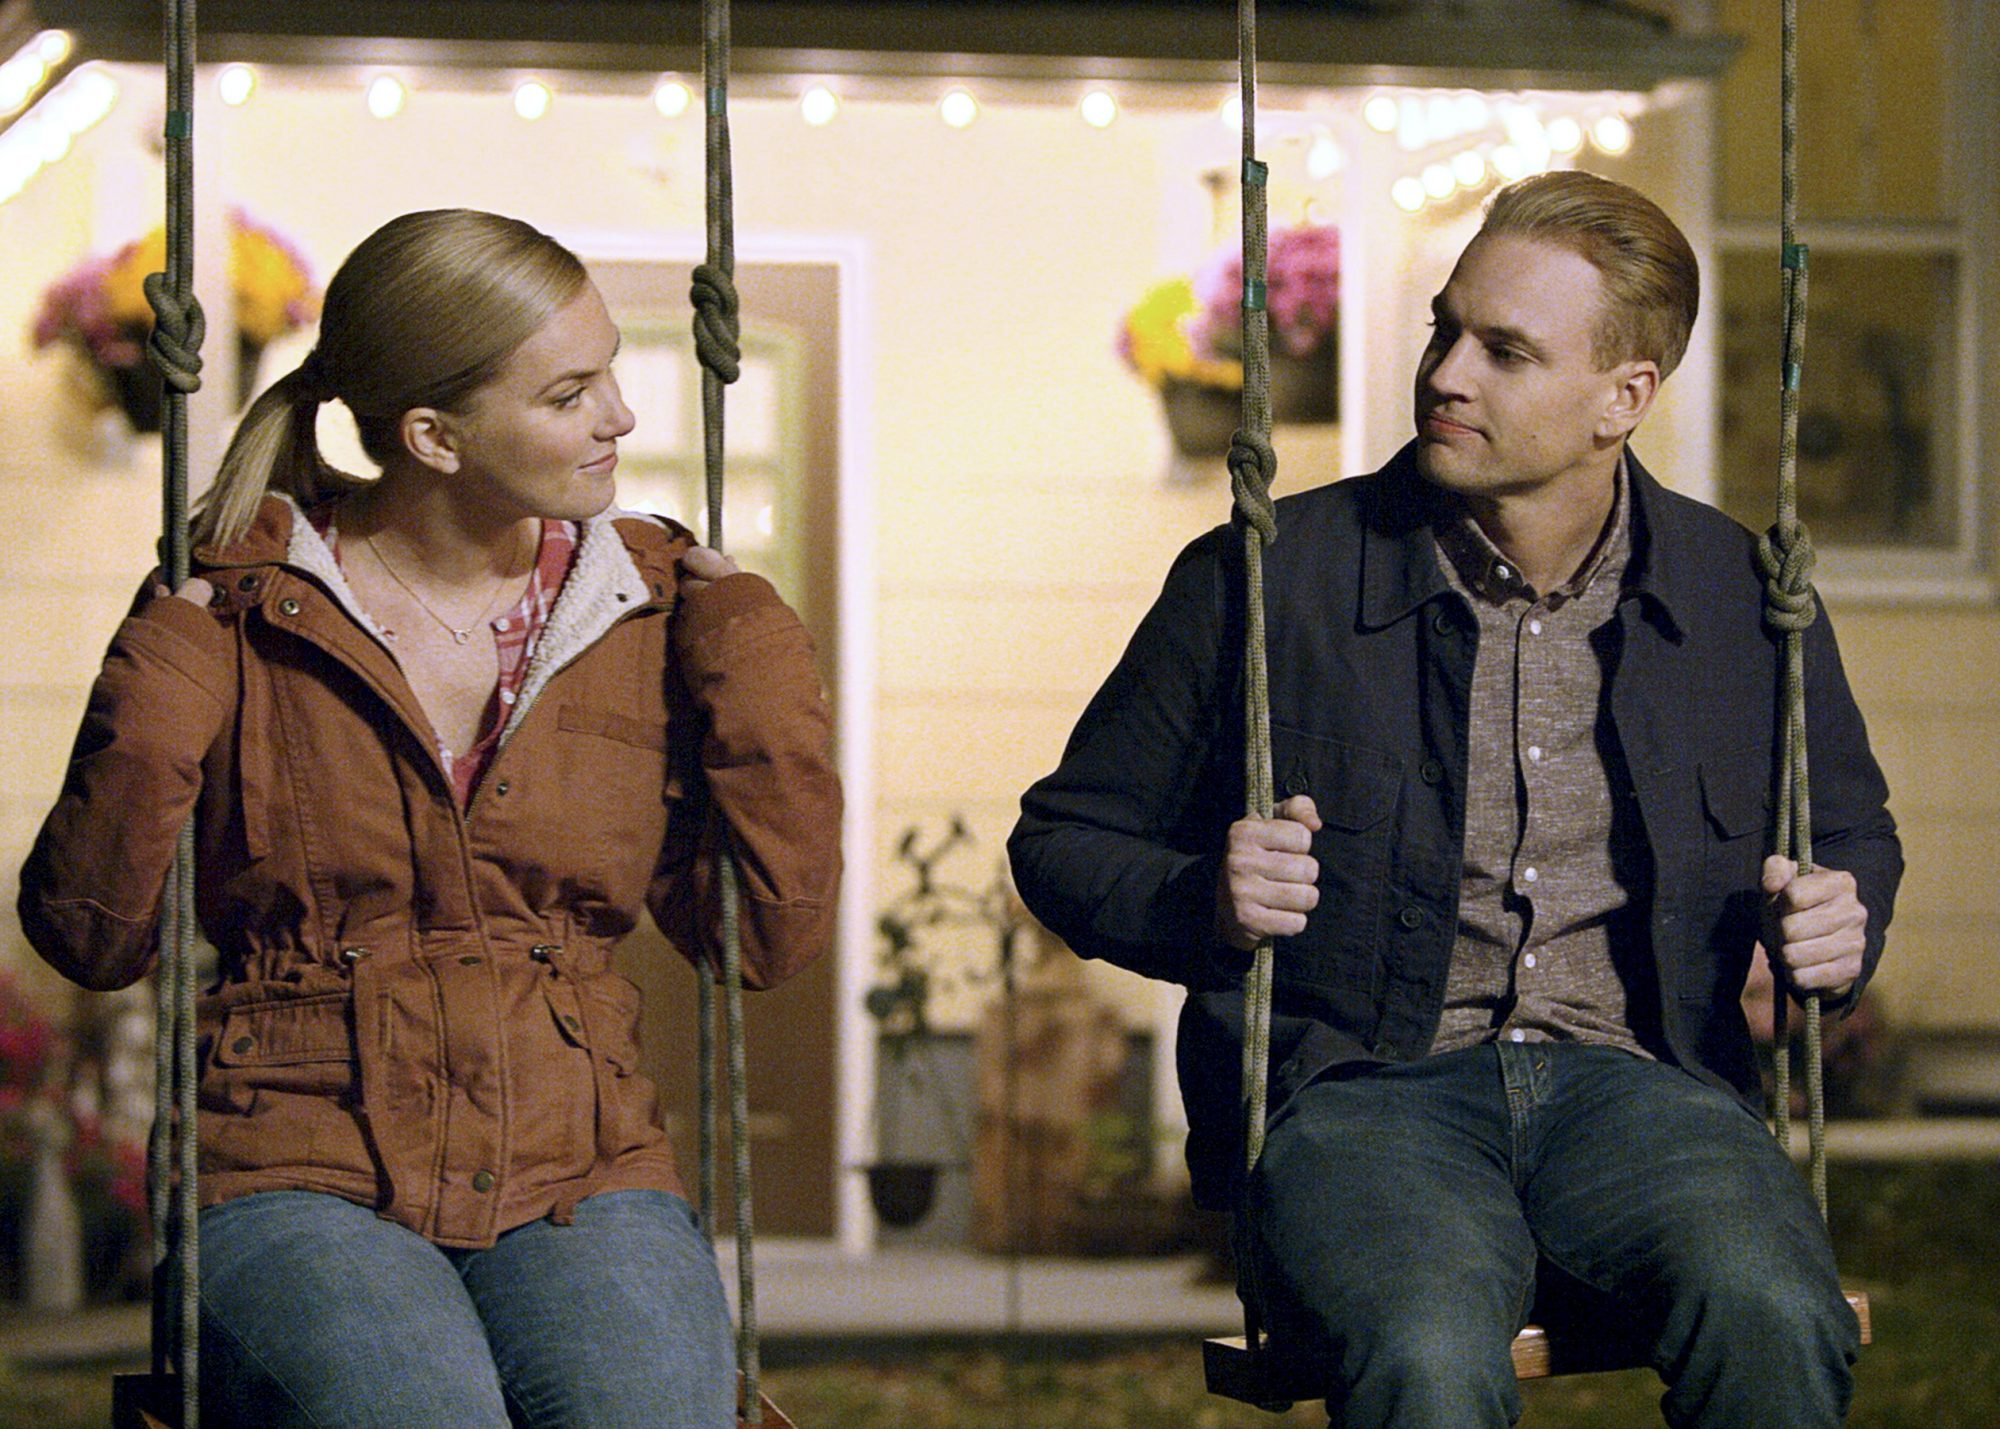 man and woman on swings